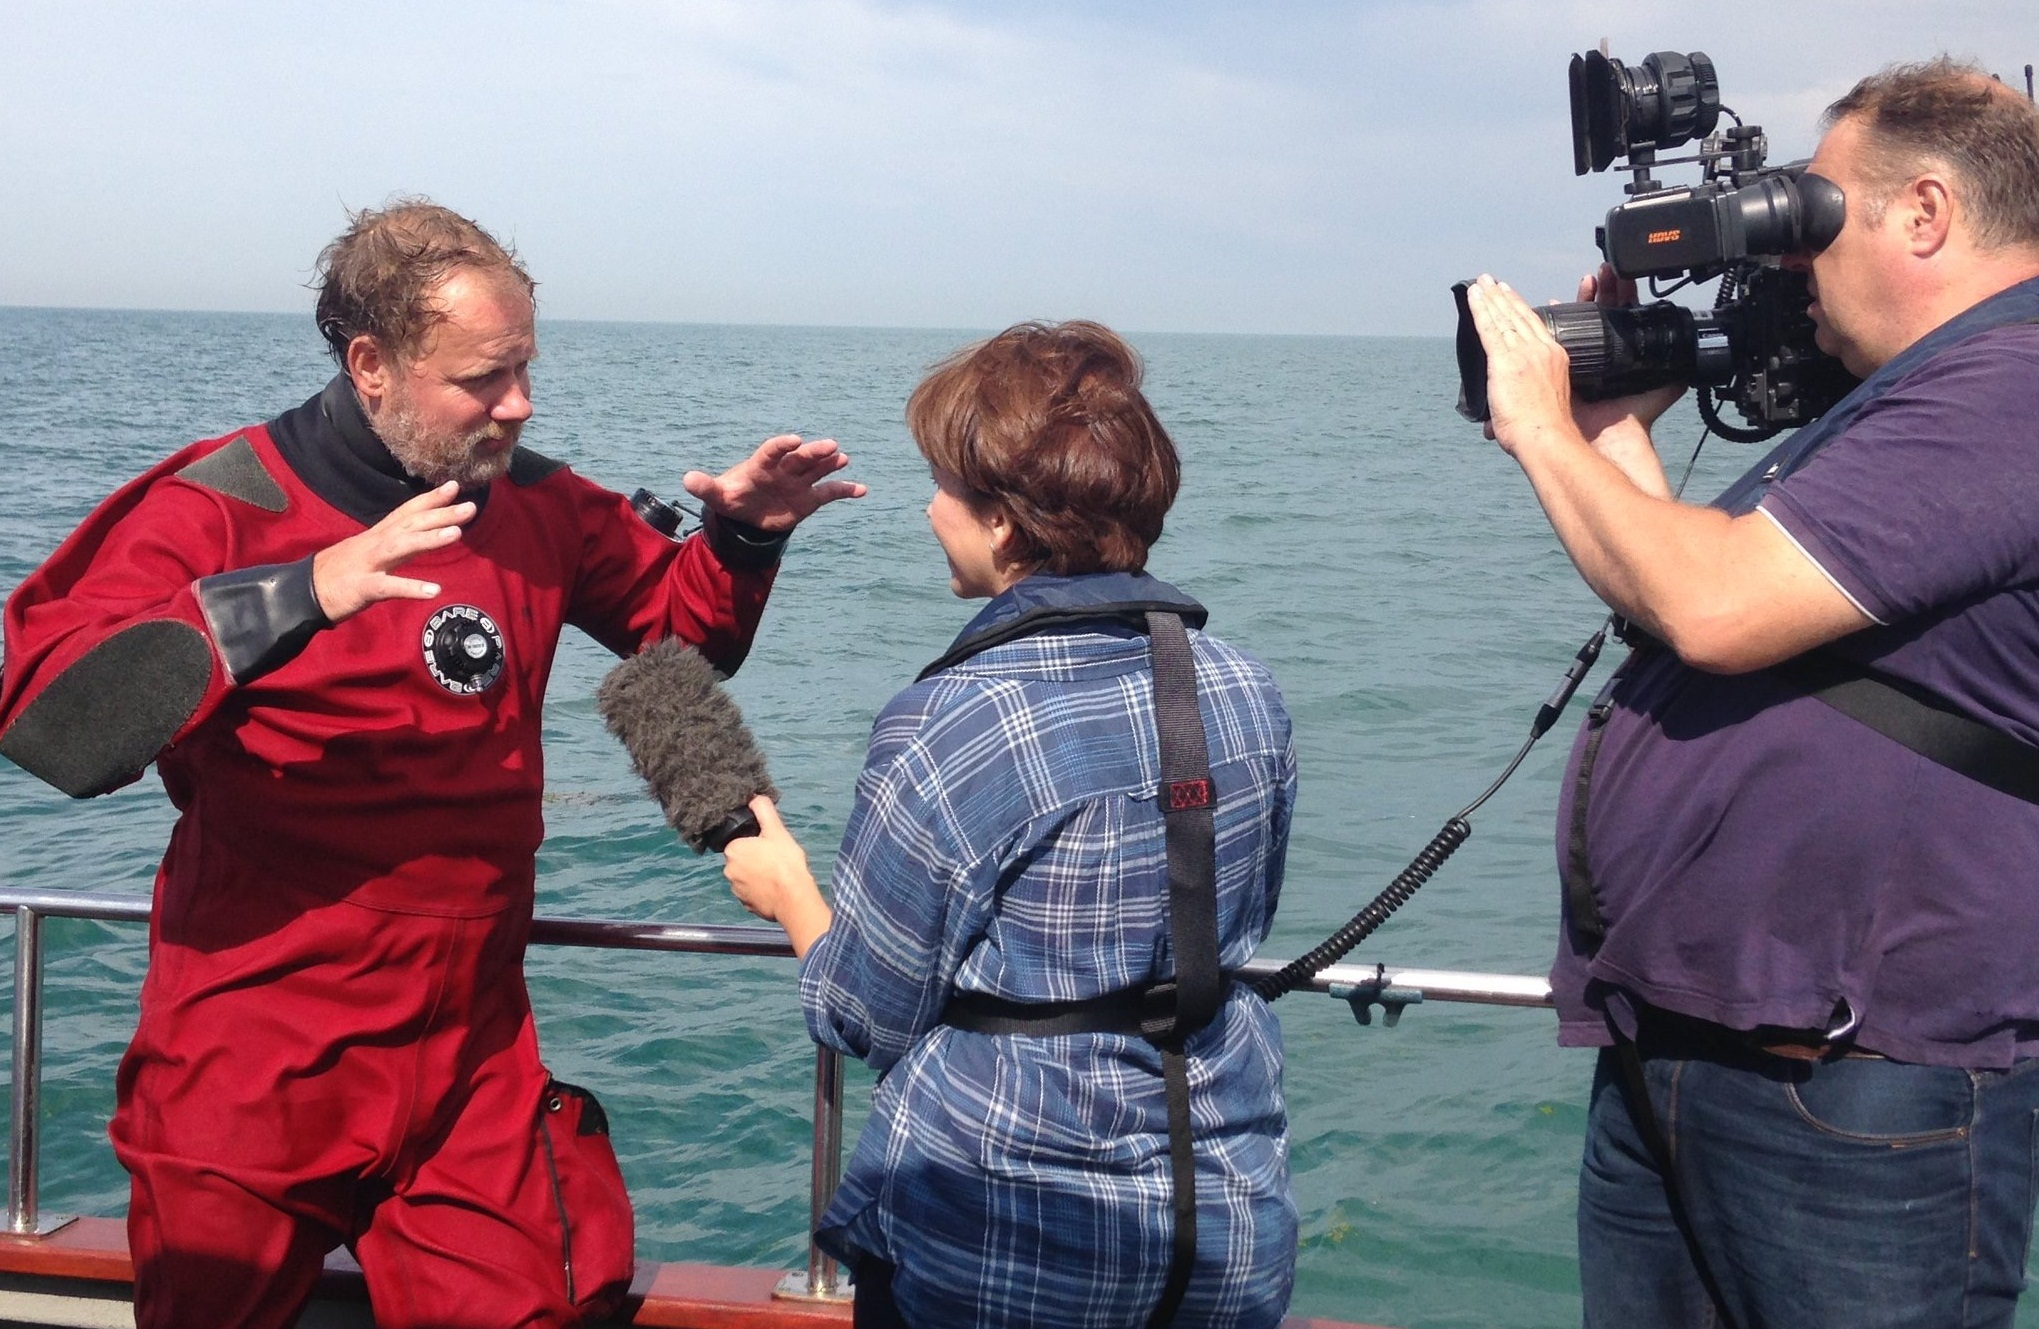 Martijn Manders being interviewed by the BBC for the Rooswijk project, 2016. Photo by: Maritime Programme RCE.